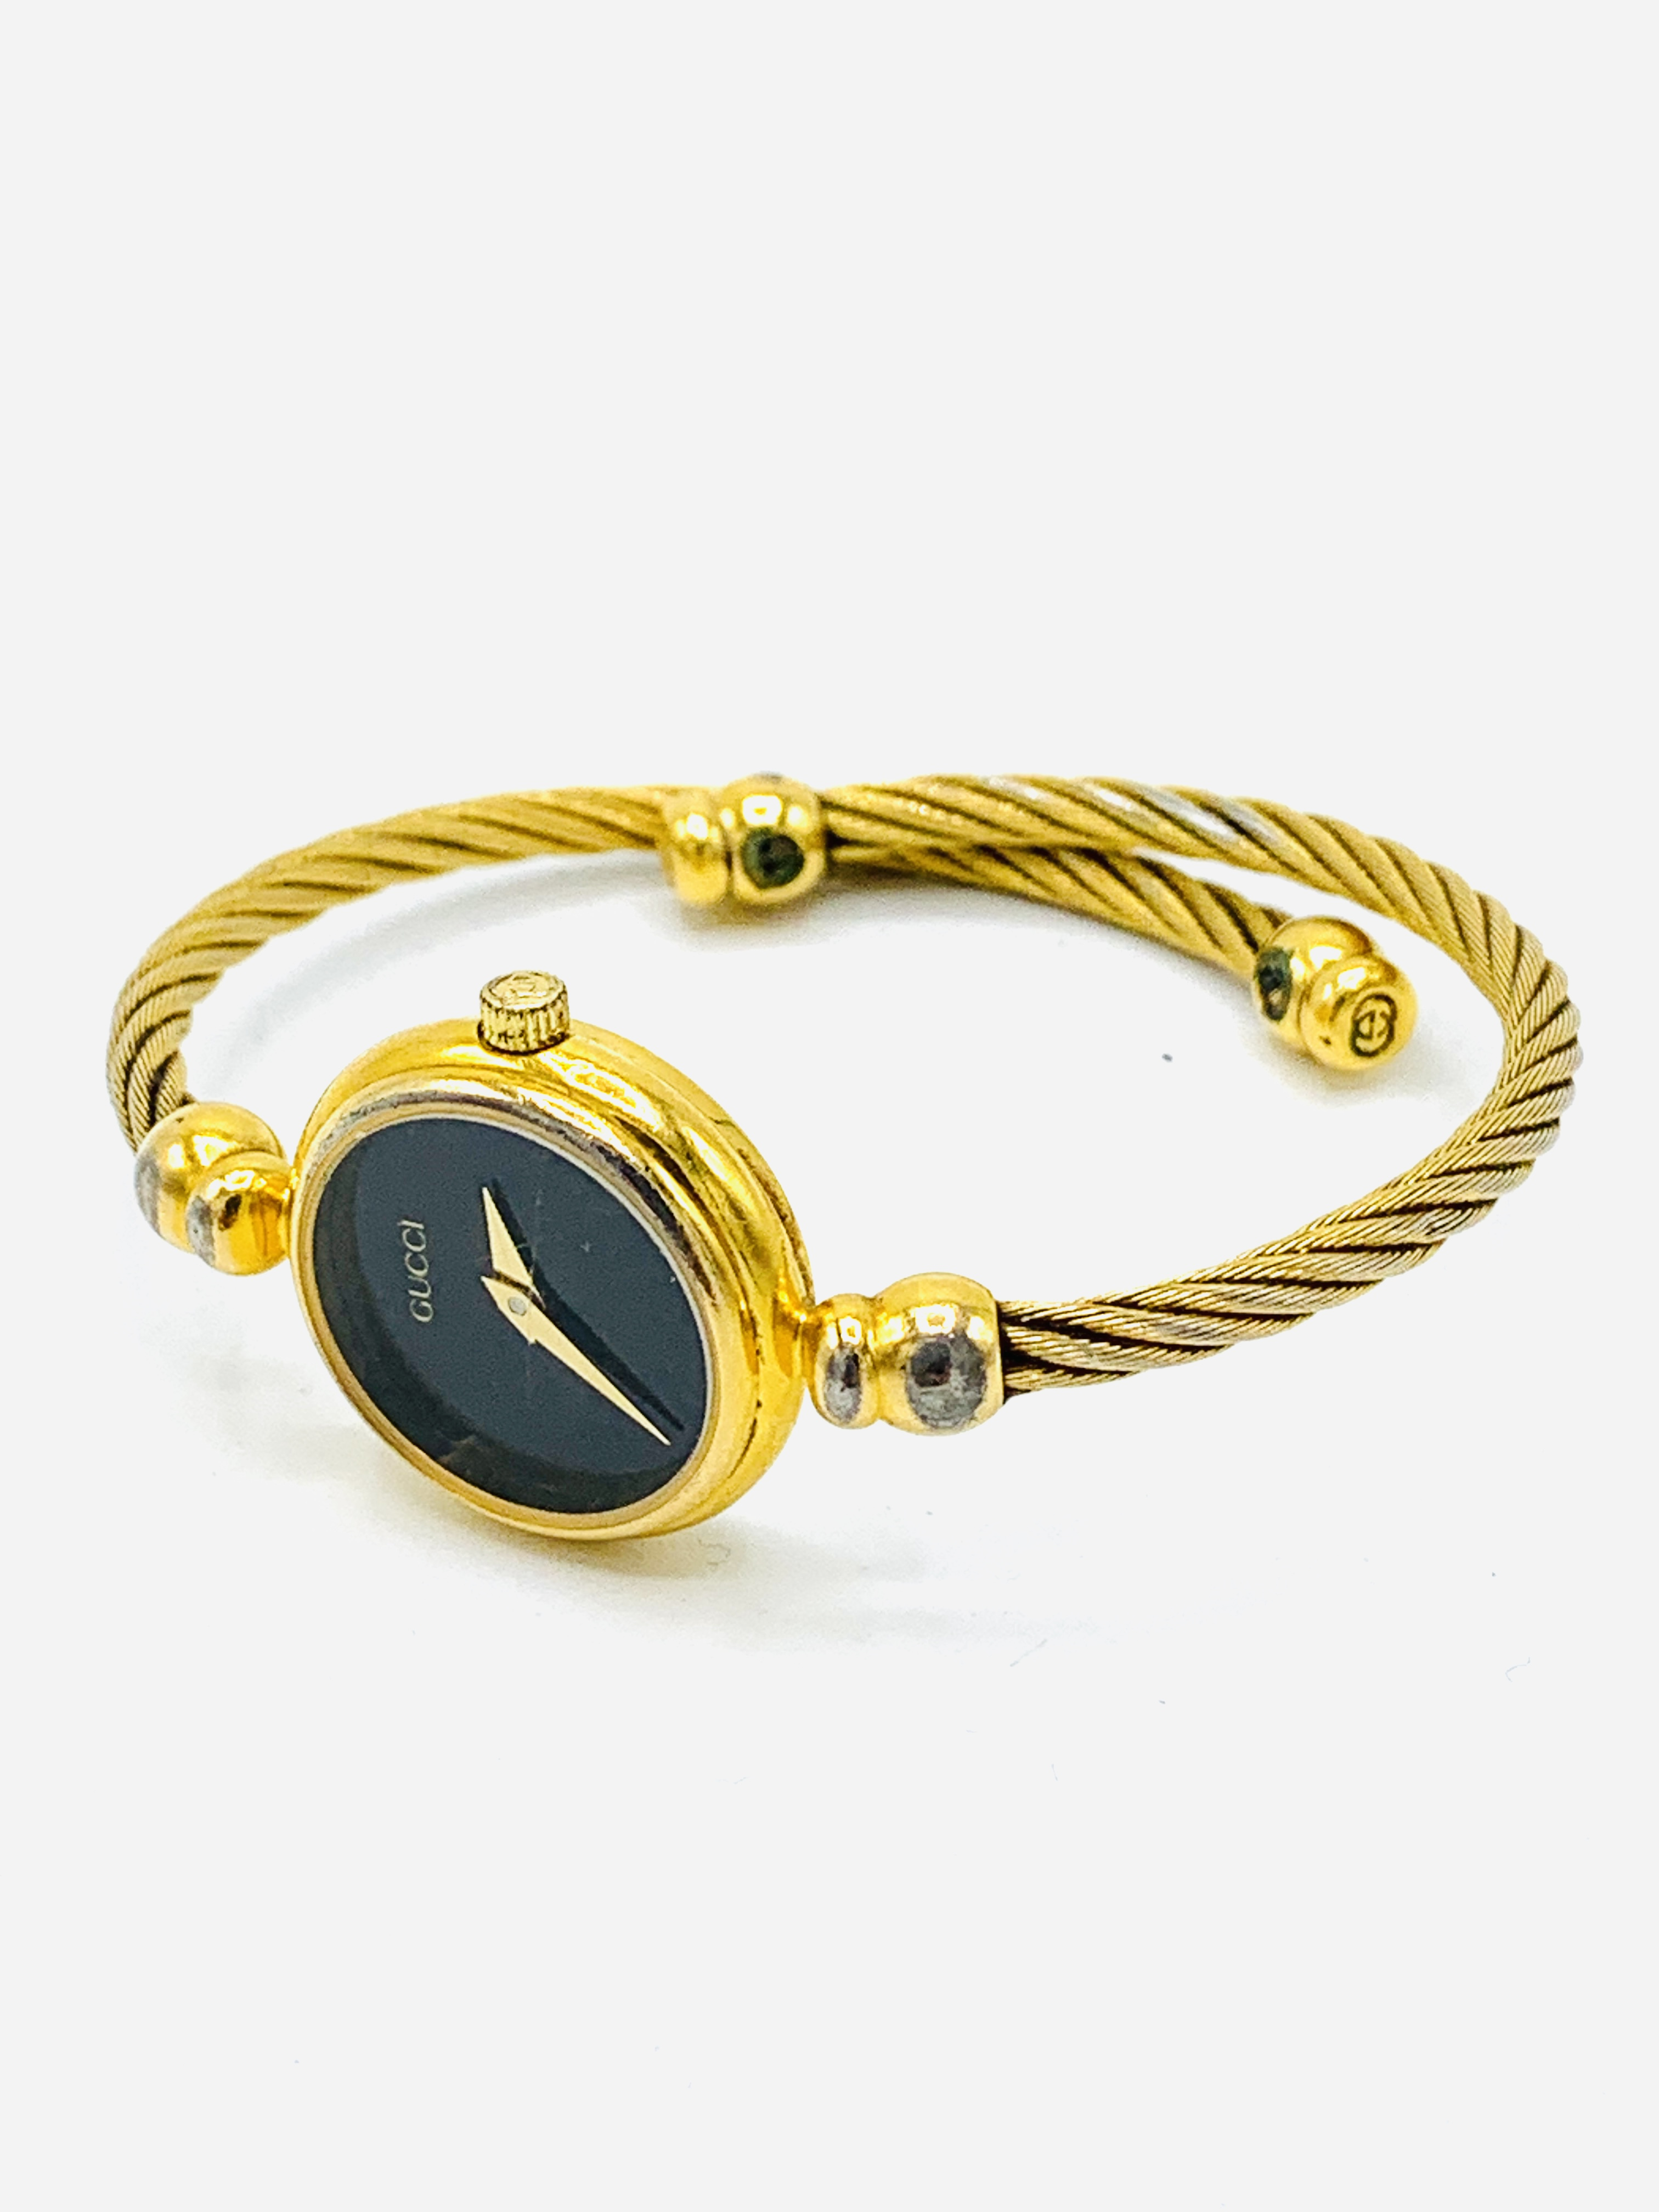 Gucci gold plate case watch with bangle strap, no. 2700.2.L